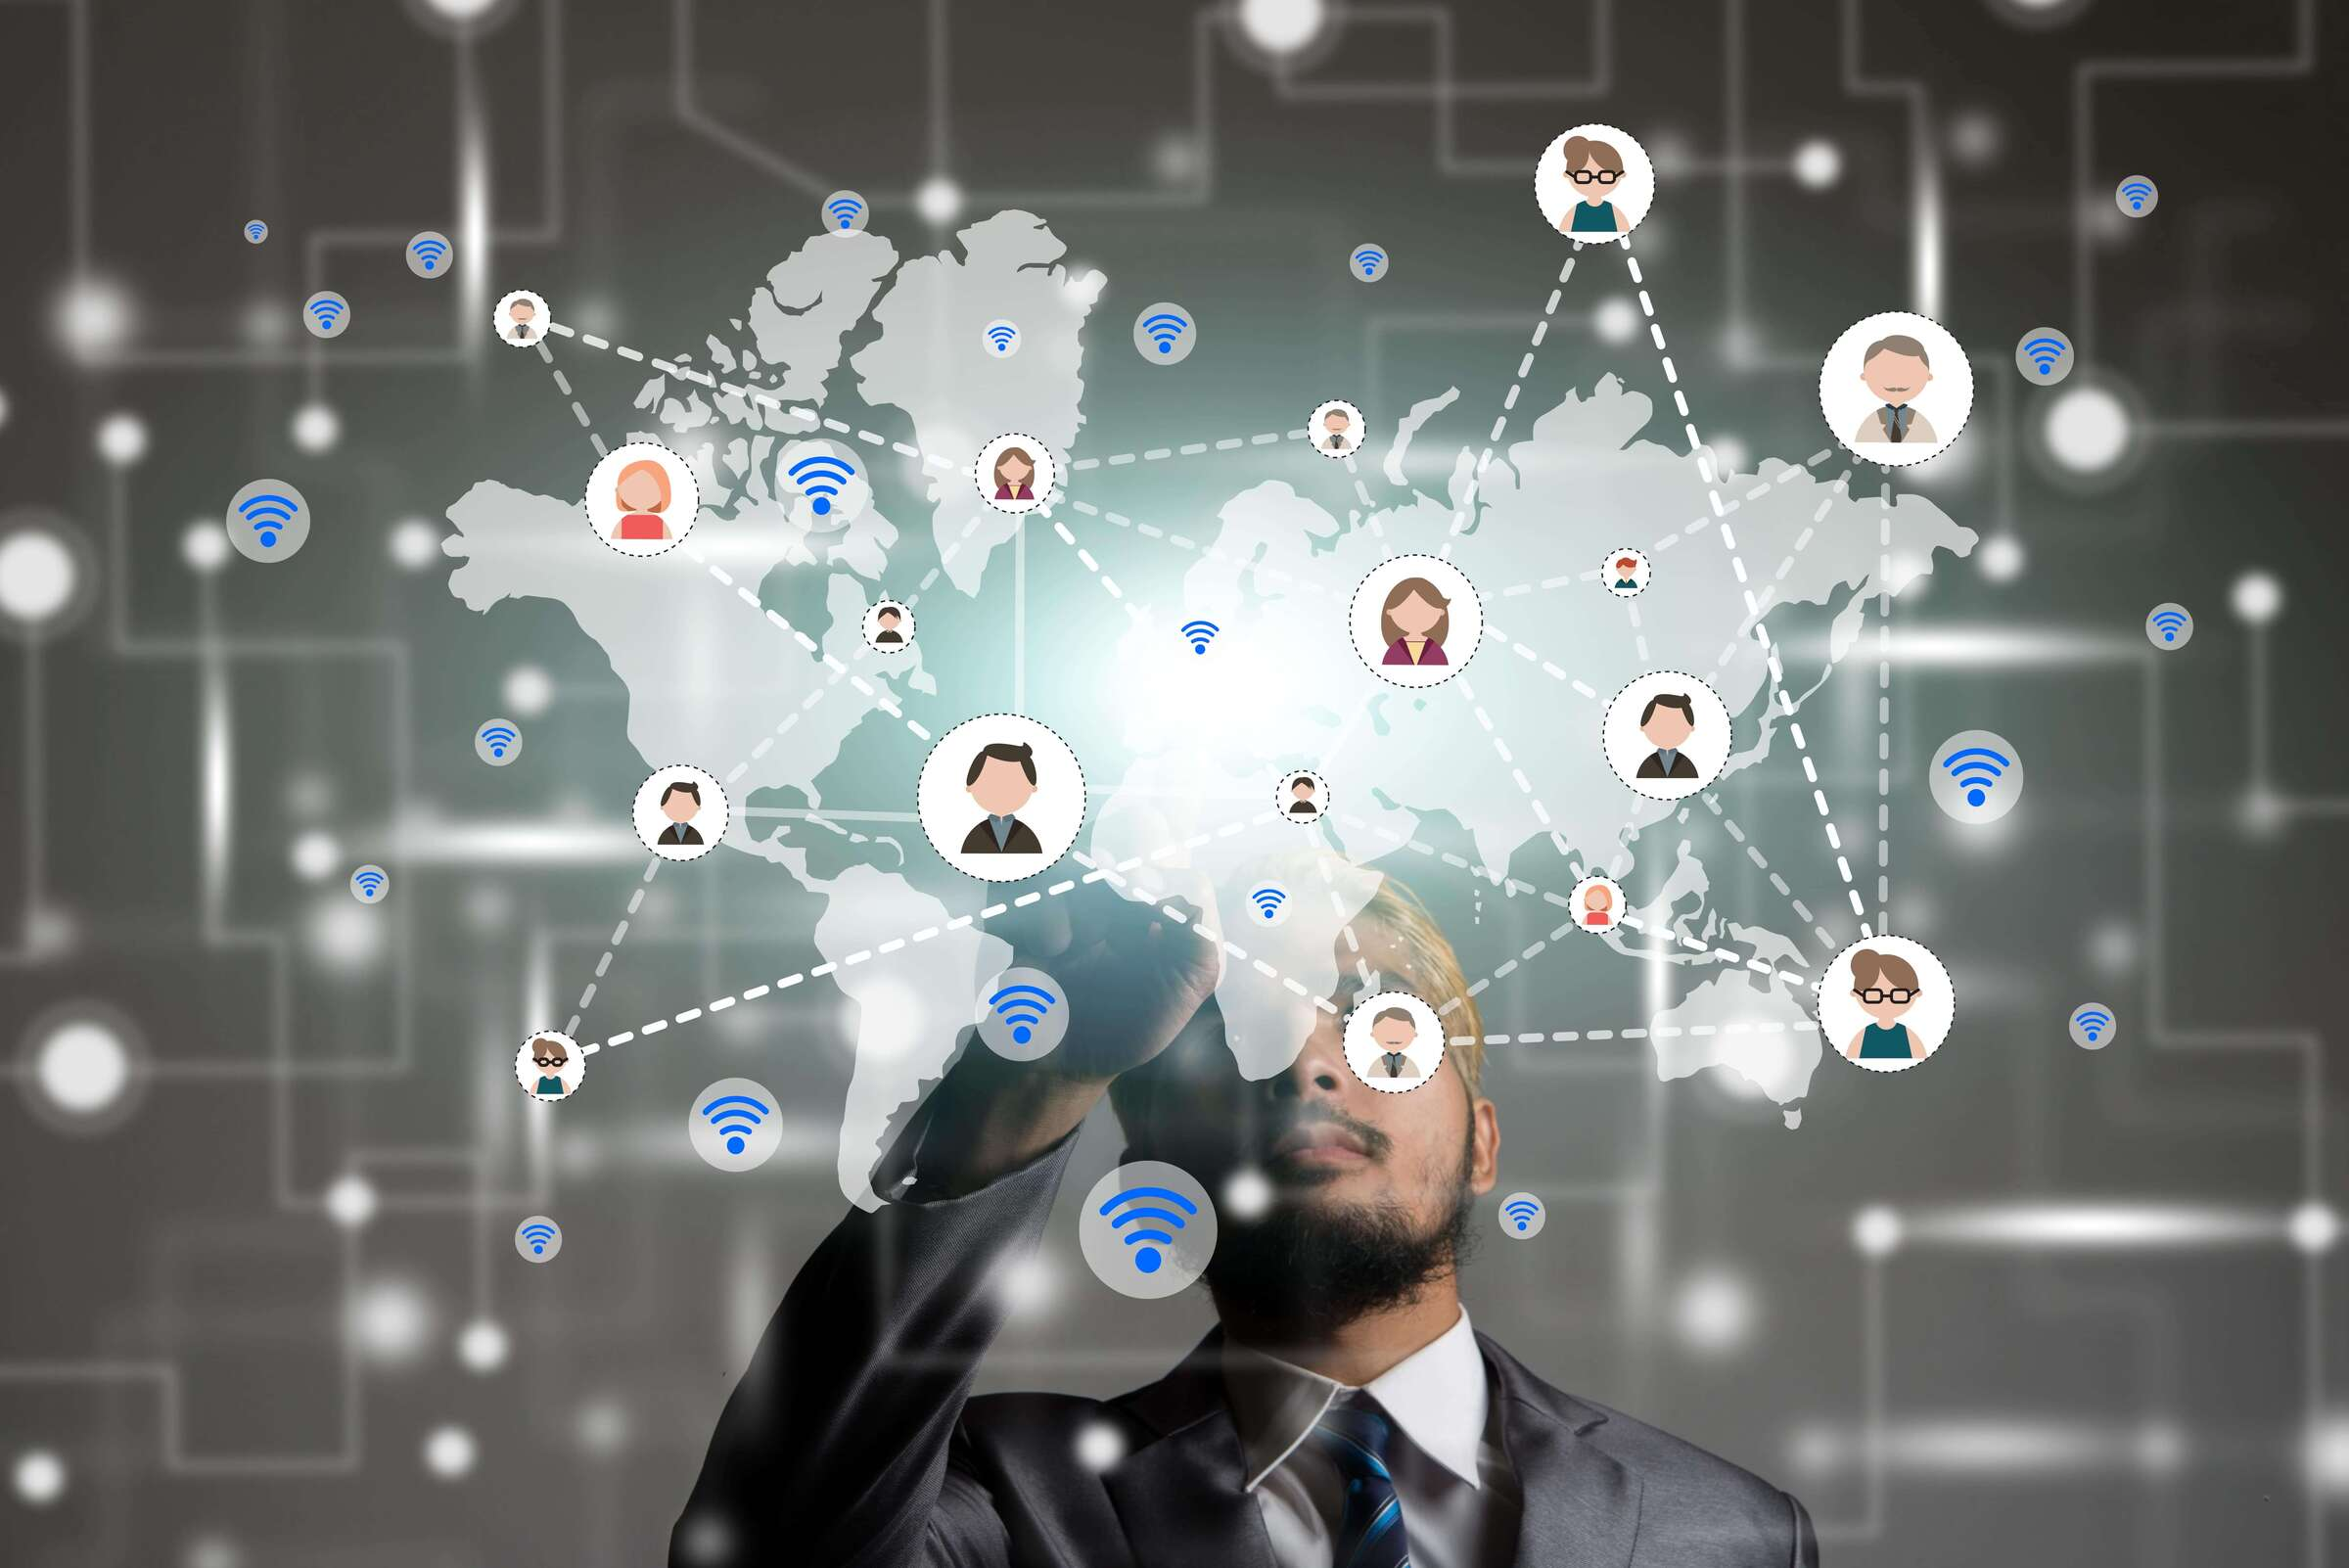 How to get more leads using Social Media